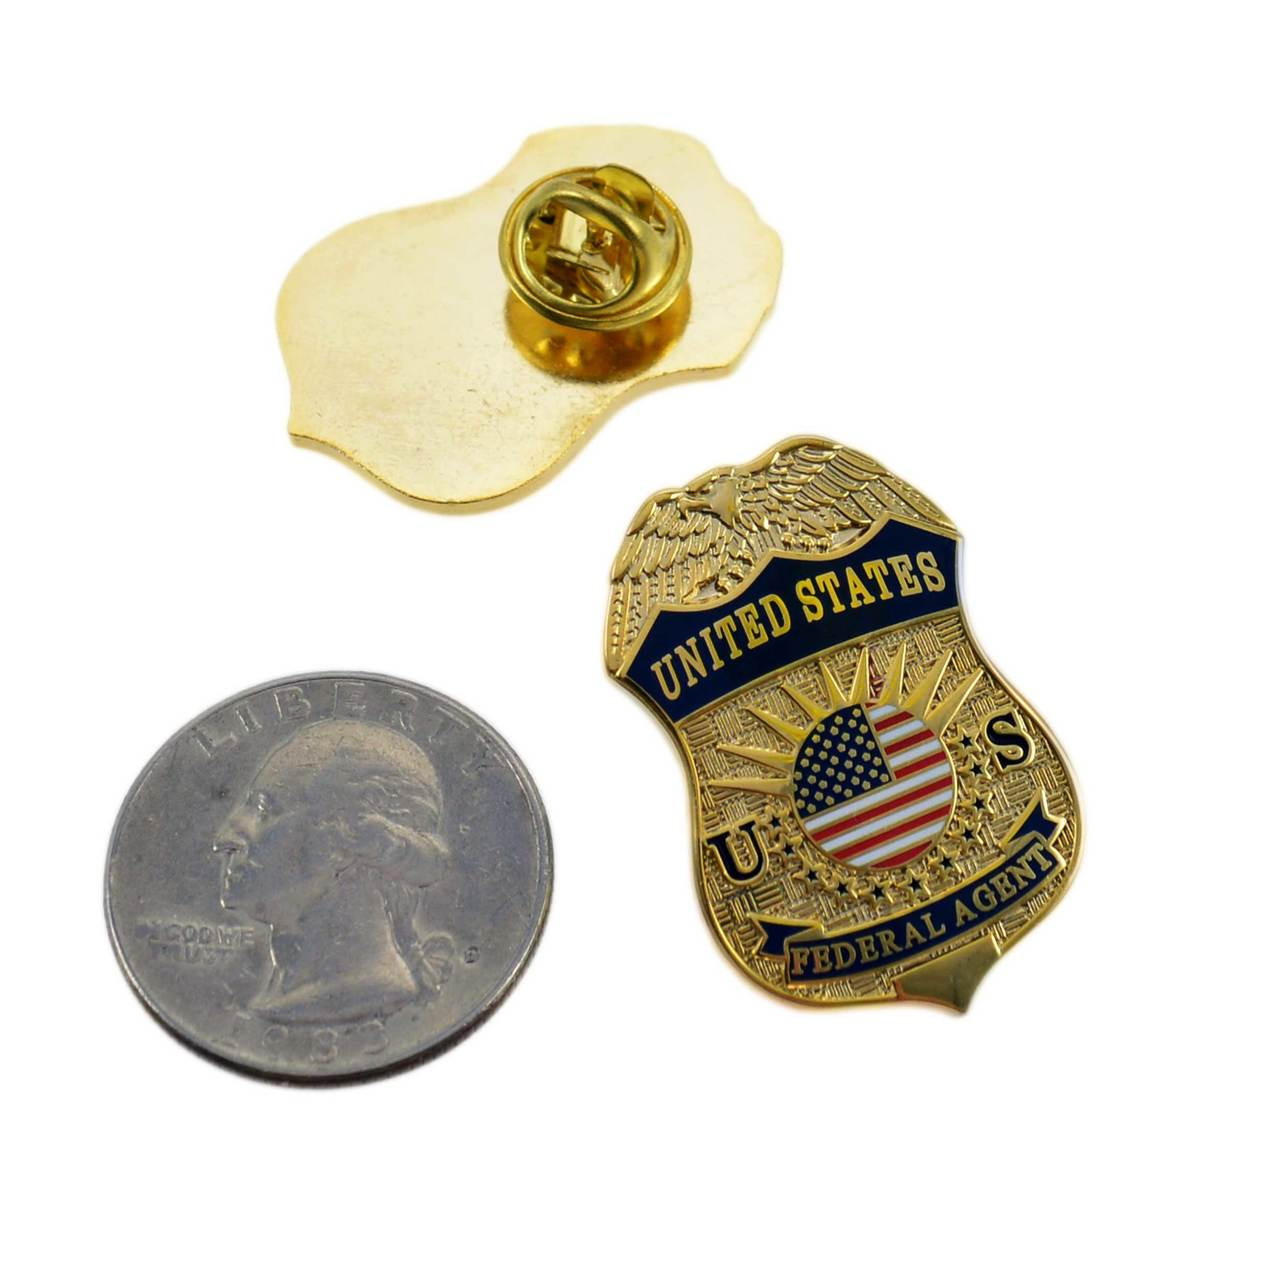 70317a5601c United States Federal Agent Mini Badge Lapel Pin | ICE Agent Badge Pin